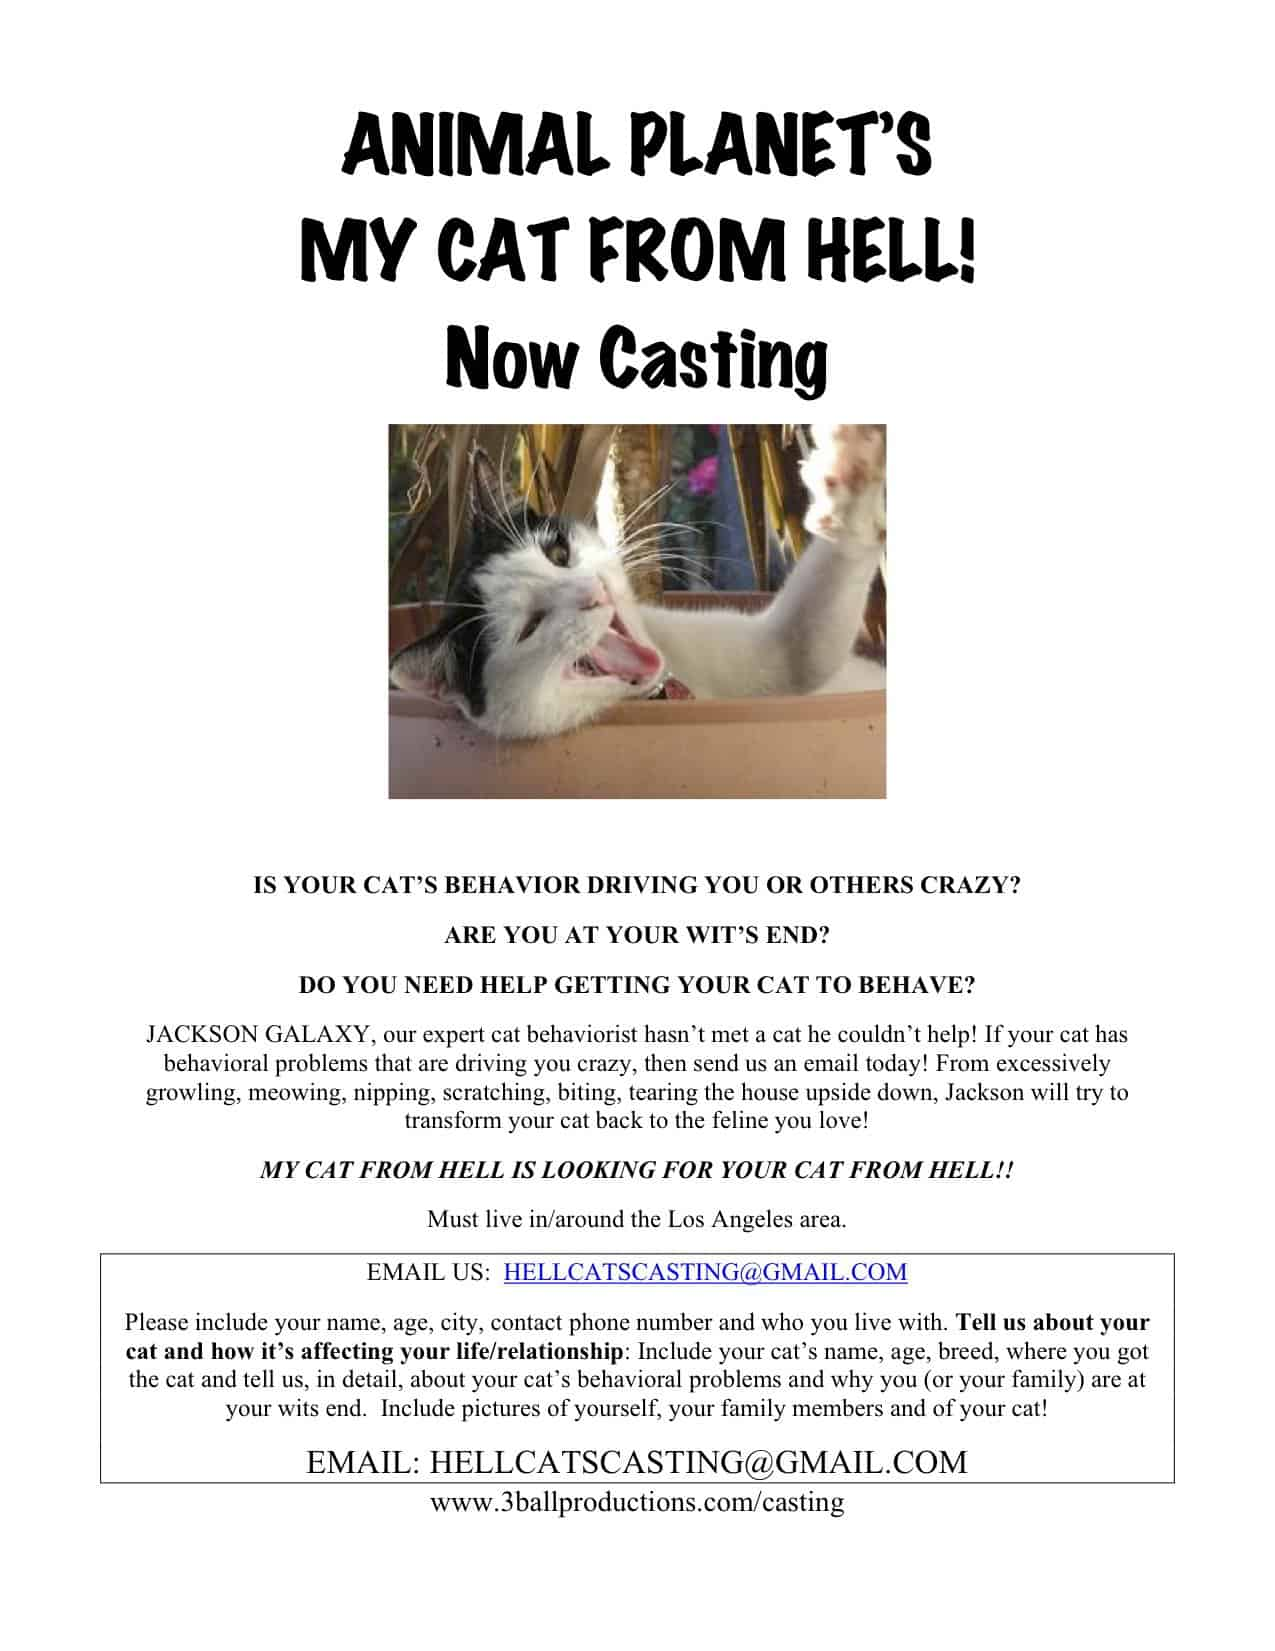 Casting call for my cat from hell cattipper for Jackson galaxy phone number